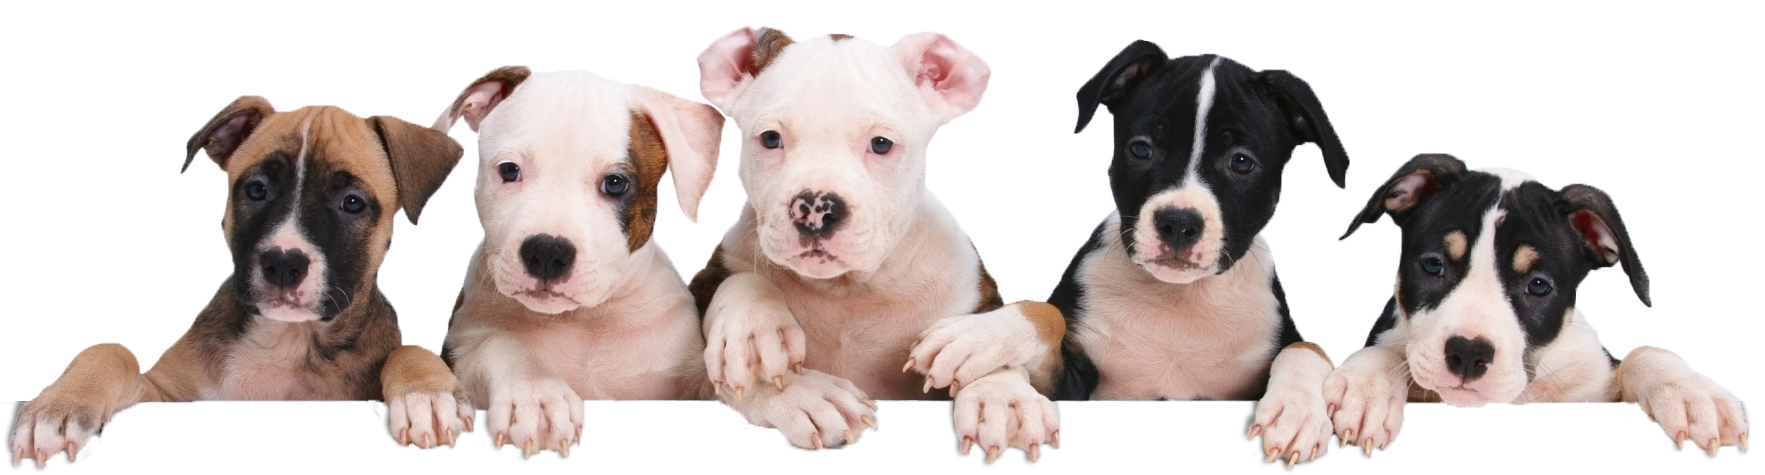 Petland joplin puppies for sale puppy products fish reptiles petland joplin cute puppies for sale solutioingenieria